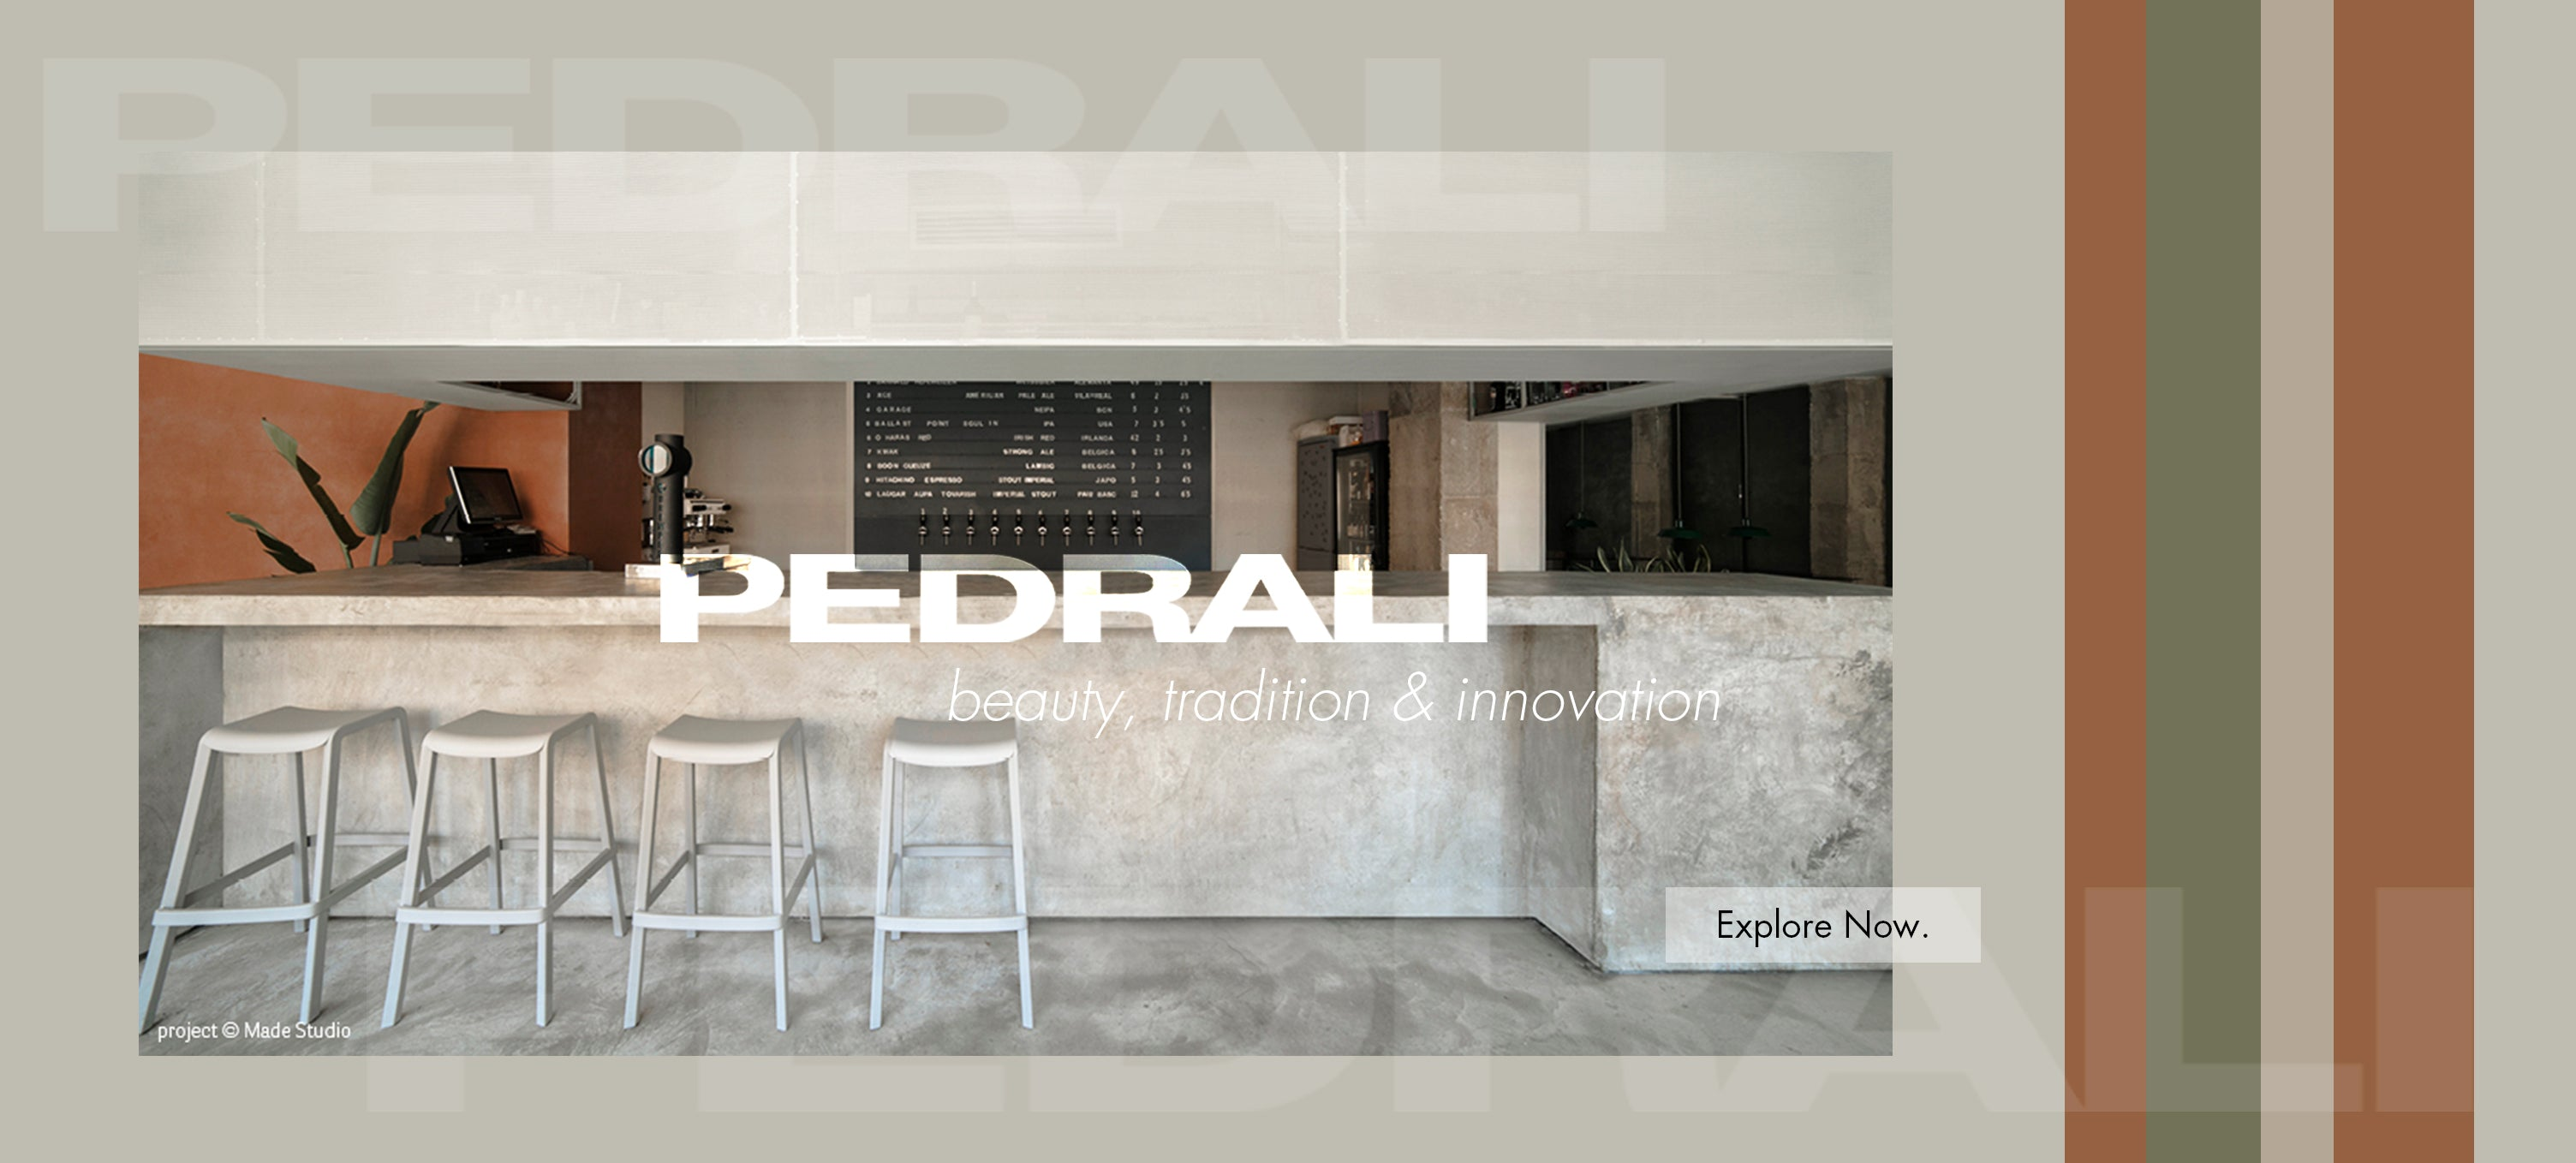 Hospitality Pedrali Banner image